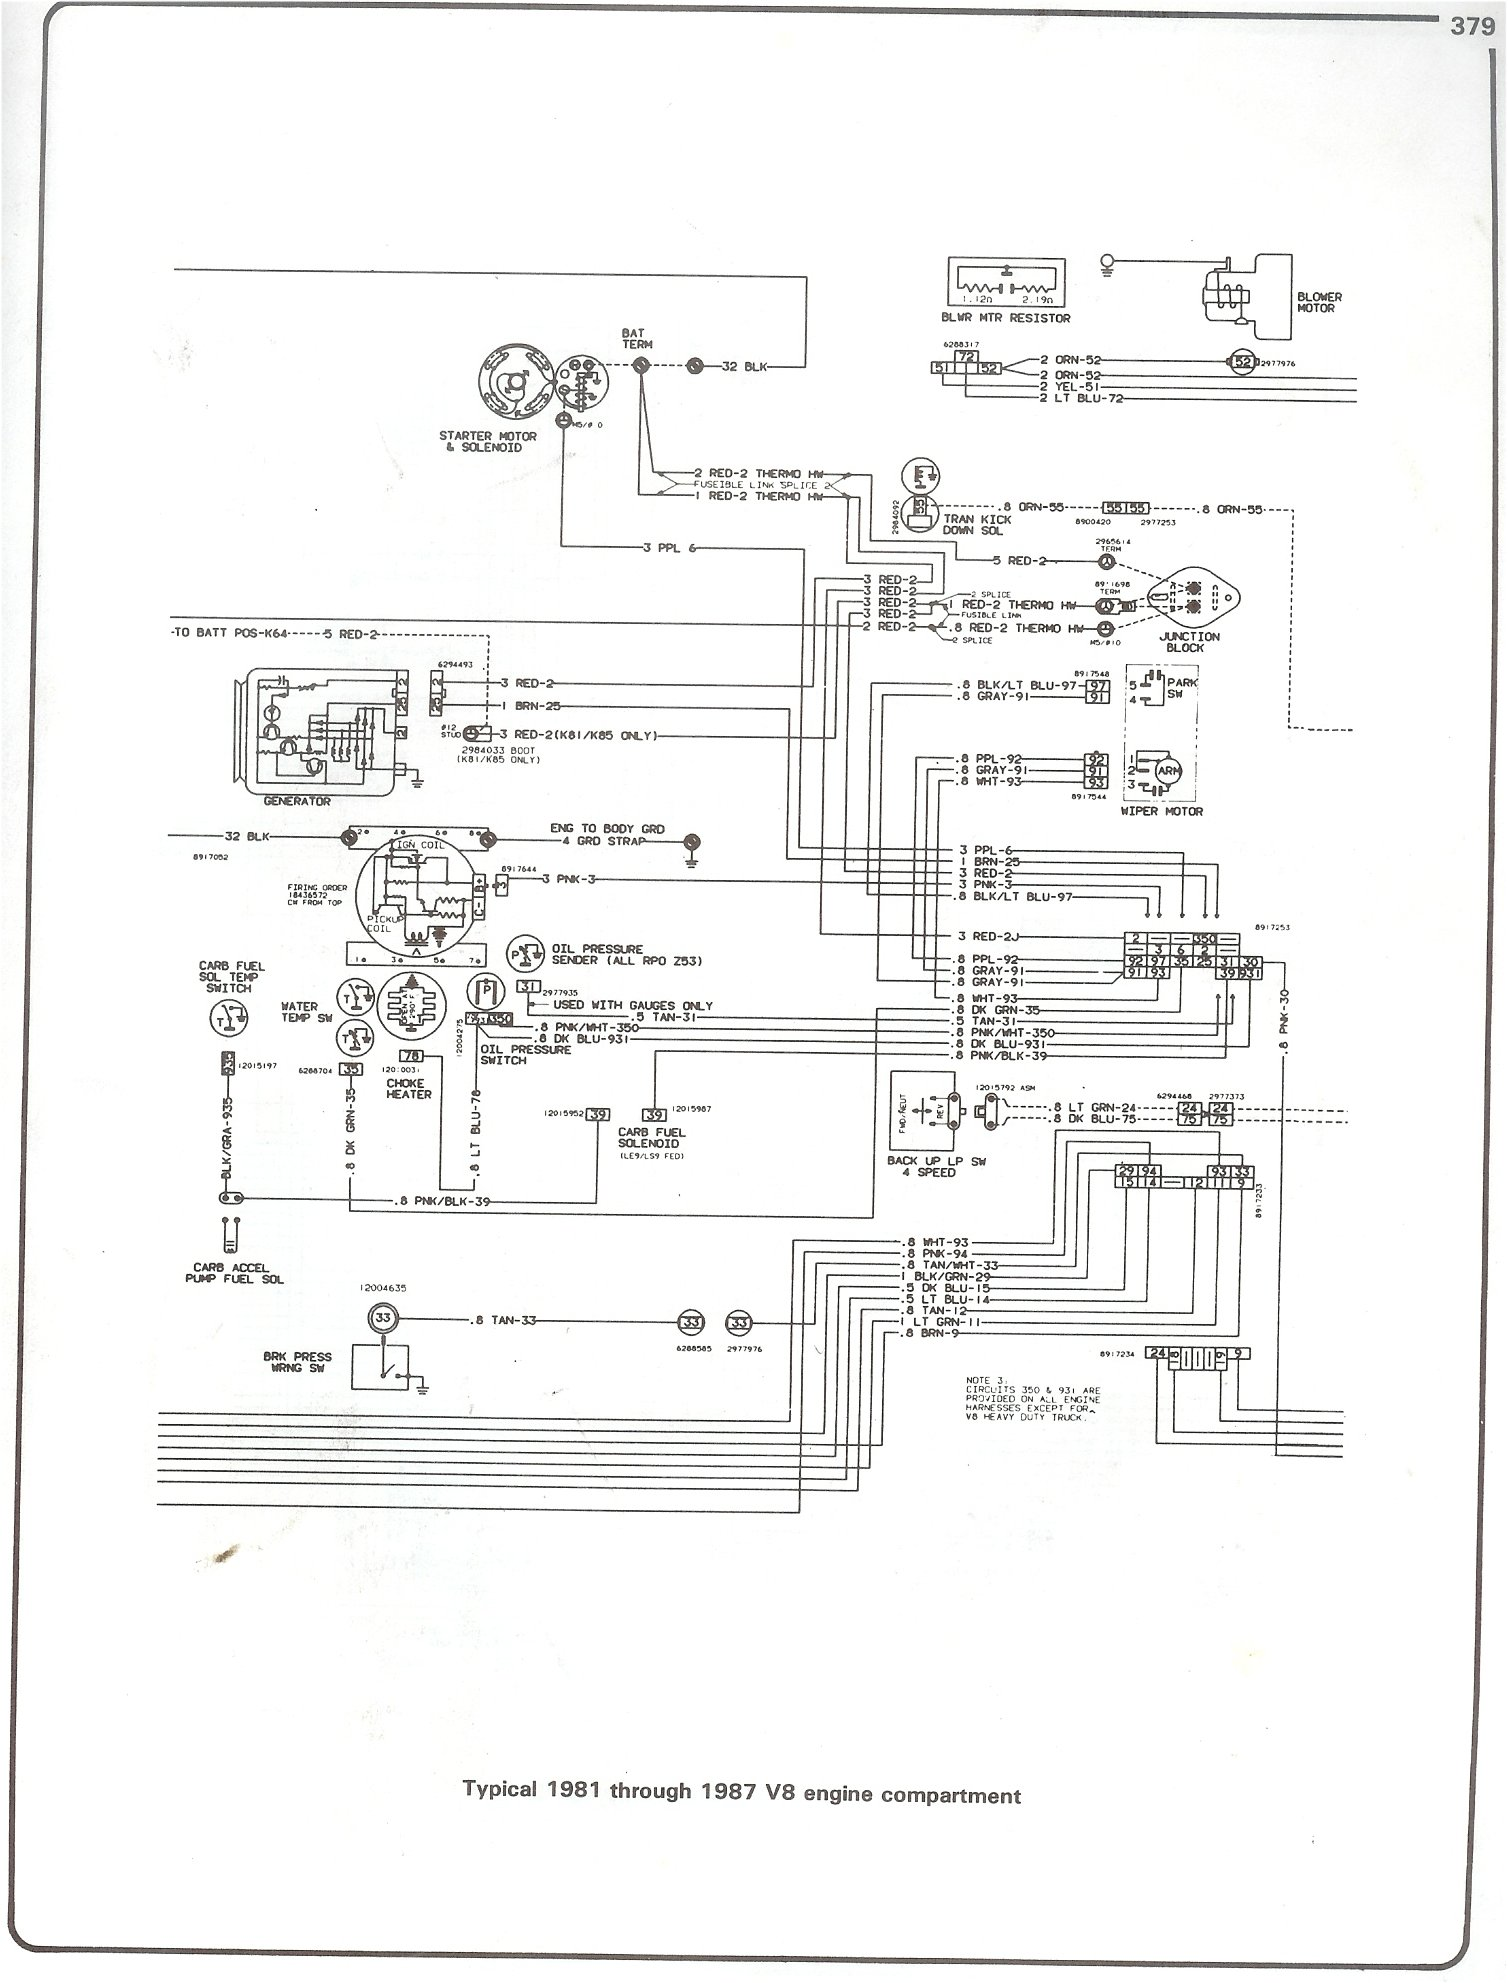 81 87_V8_engine complete 73 87 wiring diagrams  at edmiracle.co